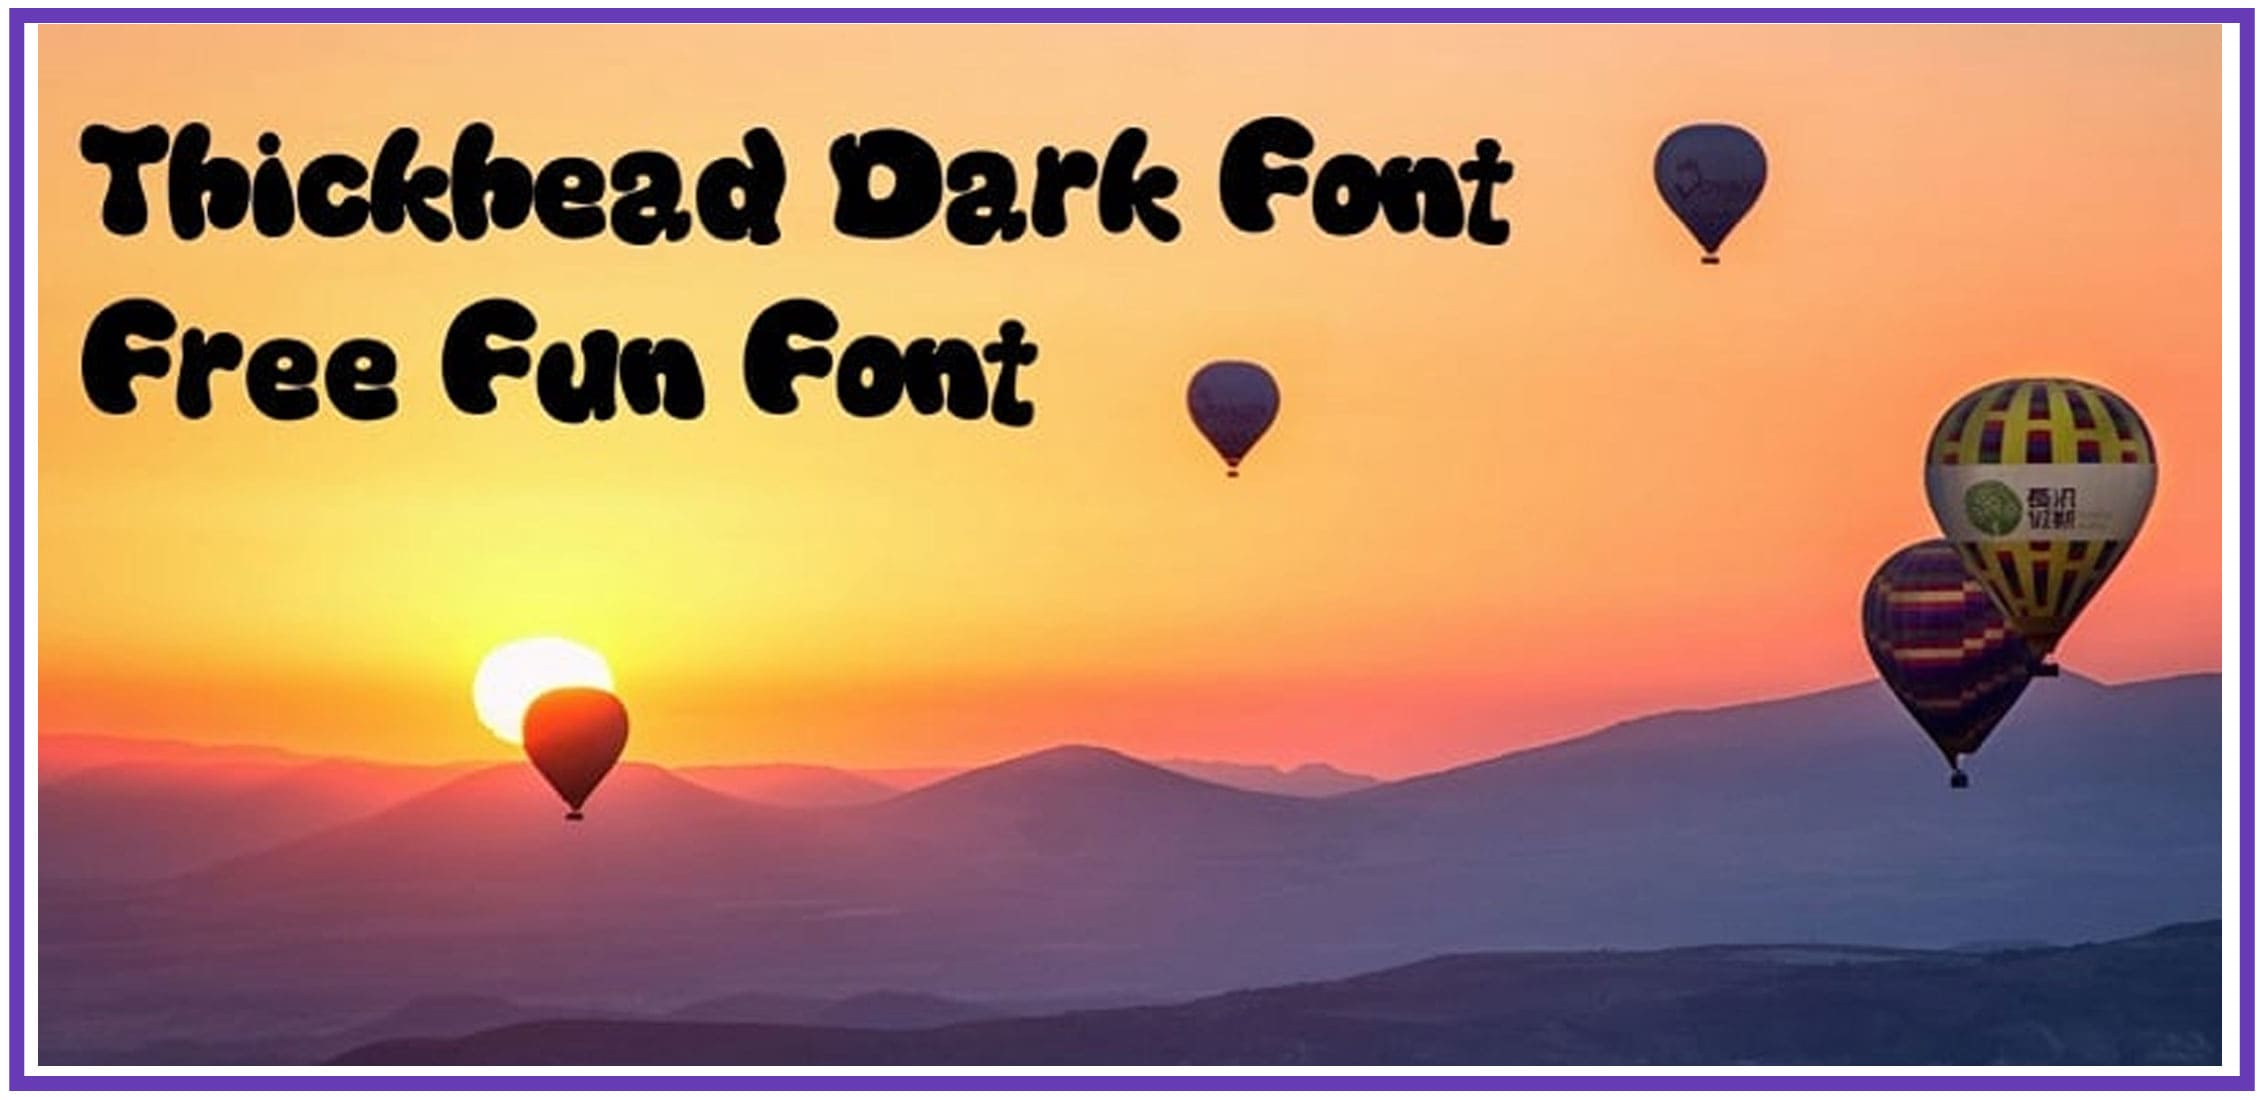 Balloons against the background of mountains and sunset and a display fun font.